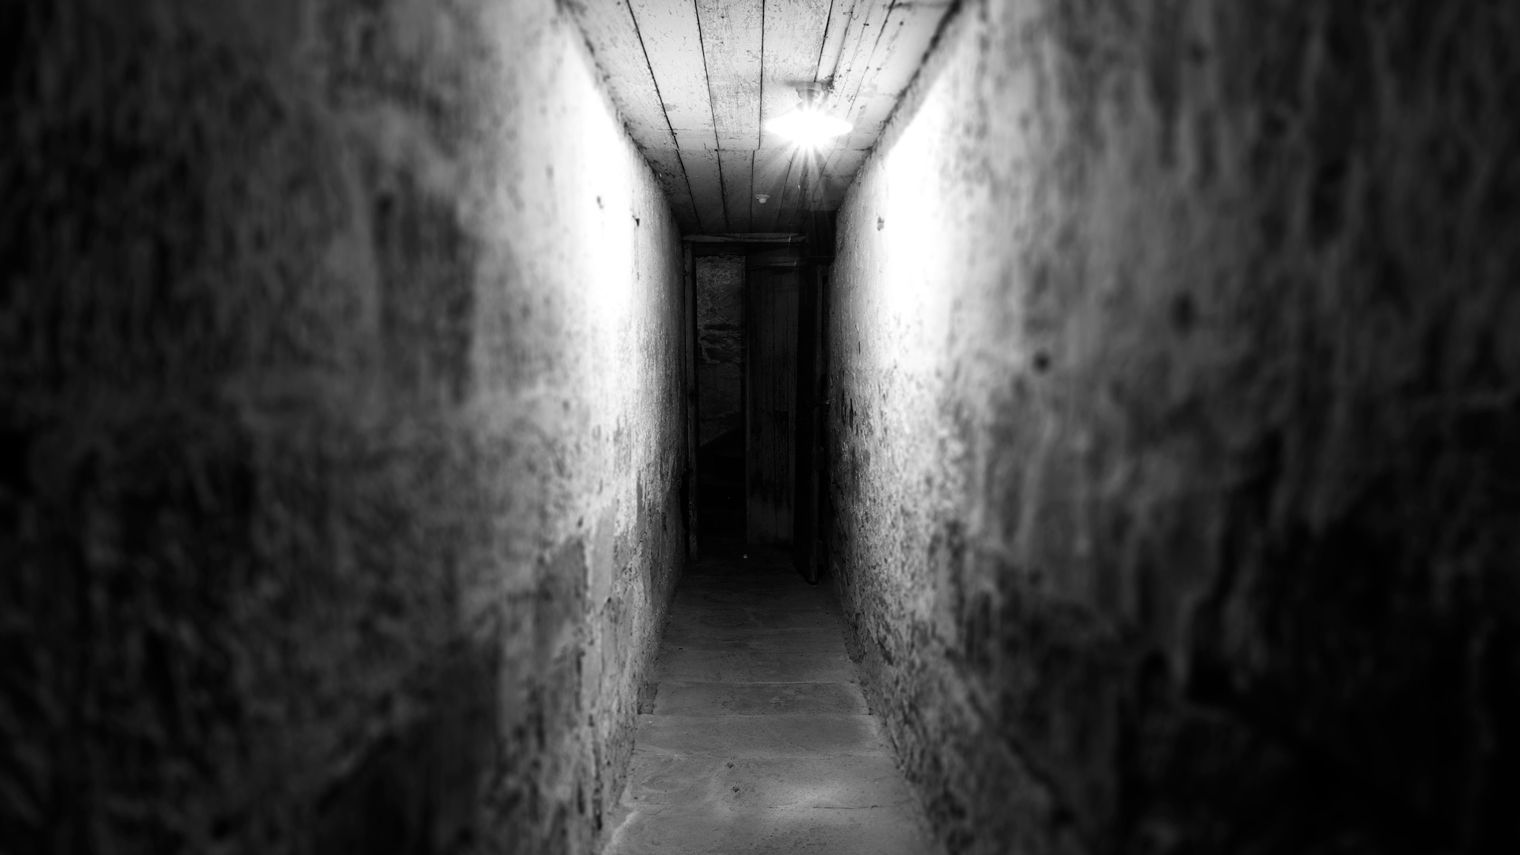 A single bulb illuminates a narrow stone passageway of stone. A few paces ahead, the passage ends in shadow—whether it is a wall or a door is unclear.